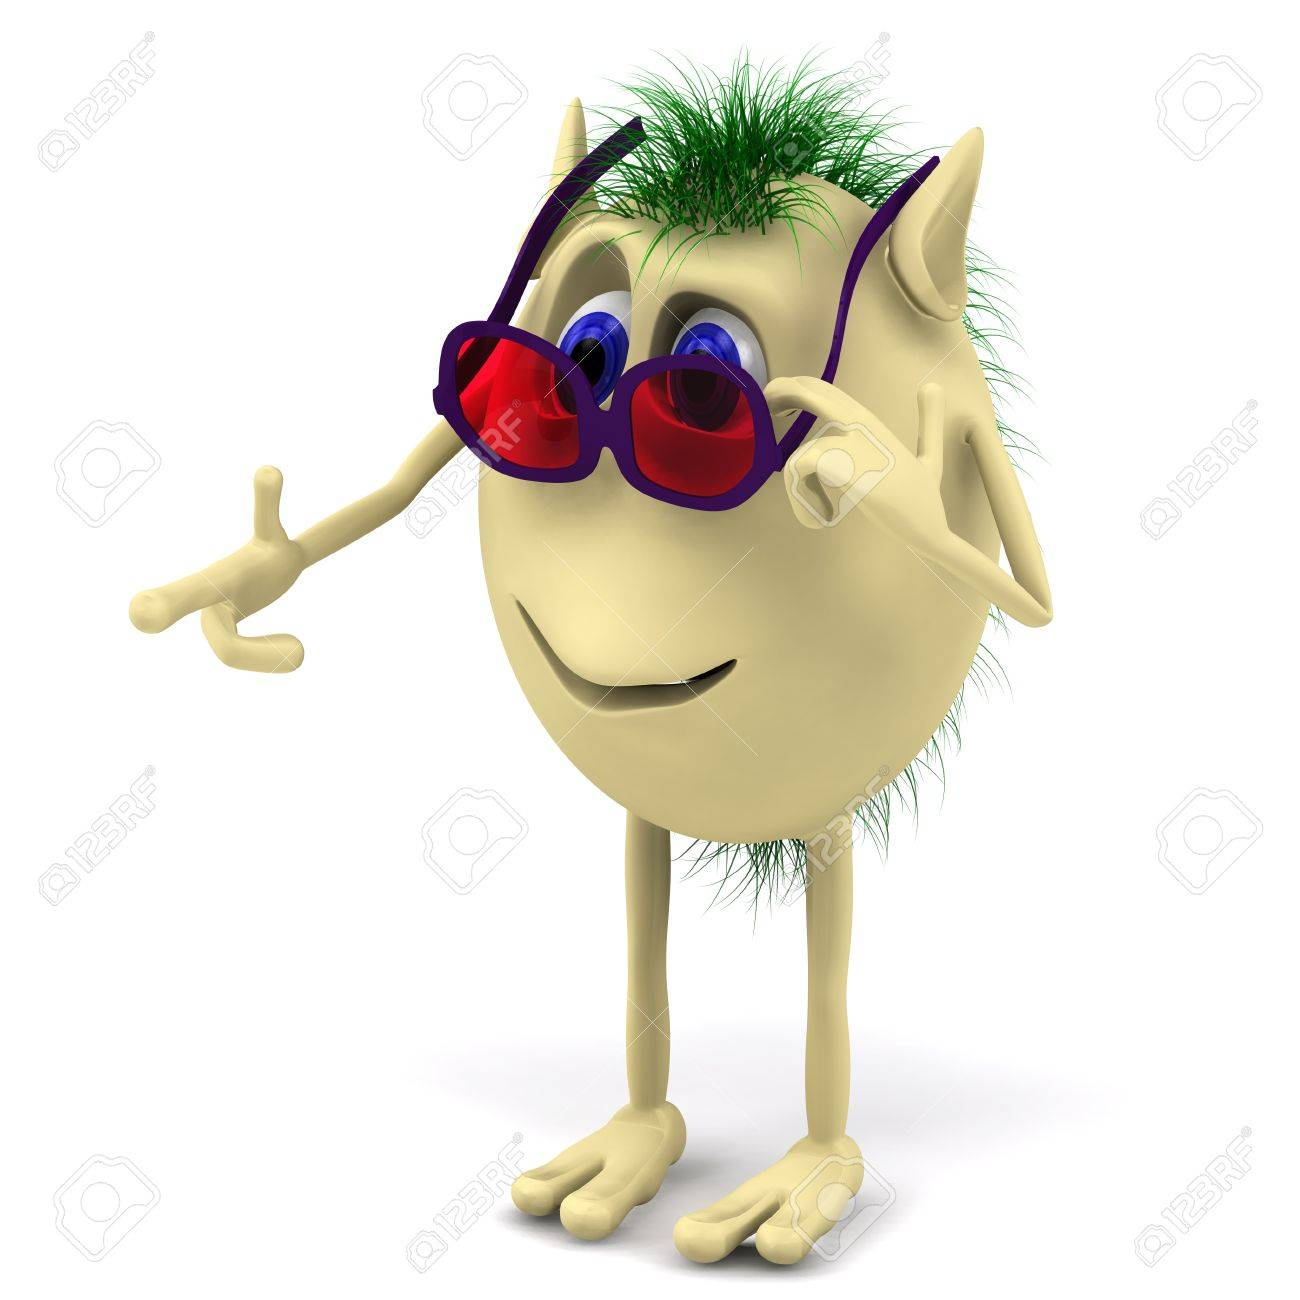 f8d7e0df9 3d Funny Character Puppet With Red Glasess Stock Photo, Picture And ...